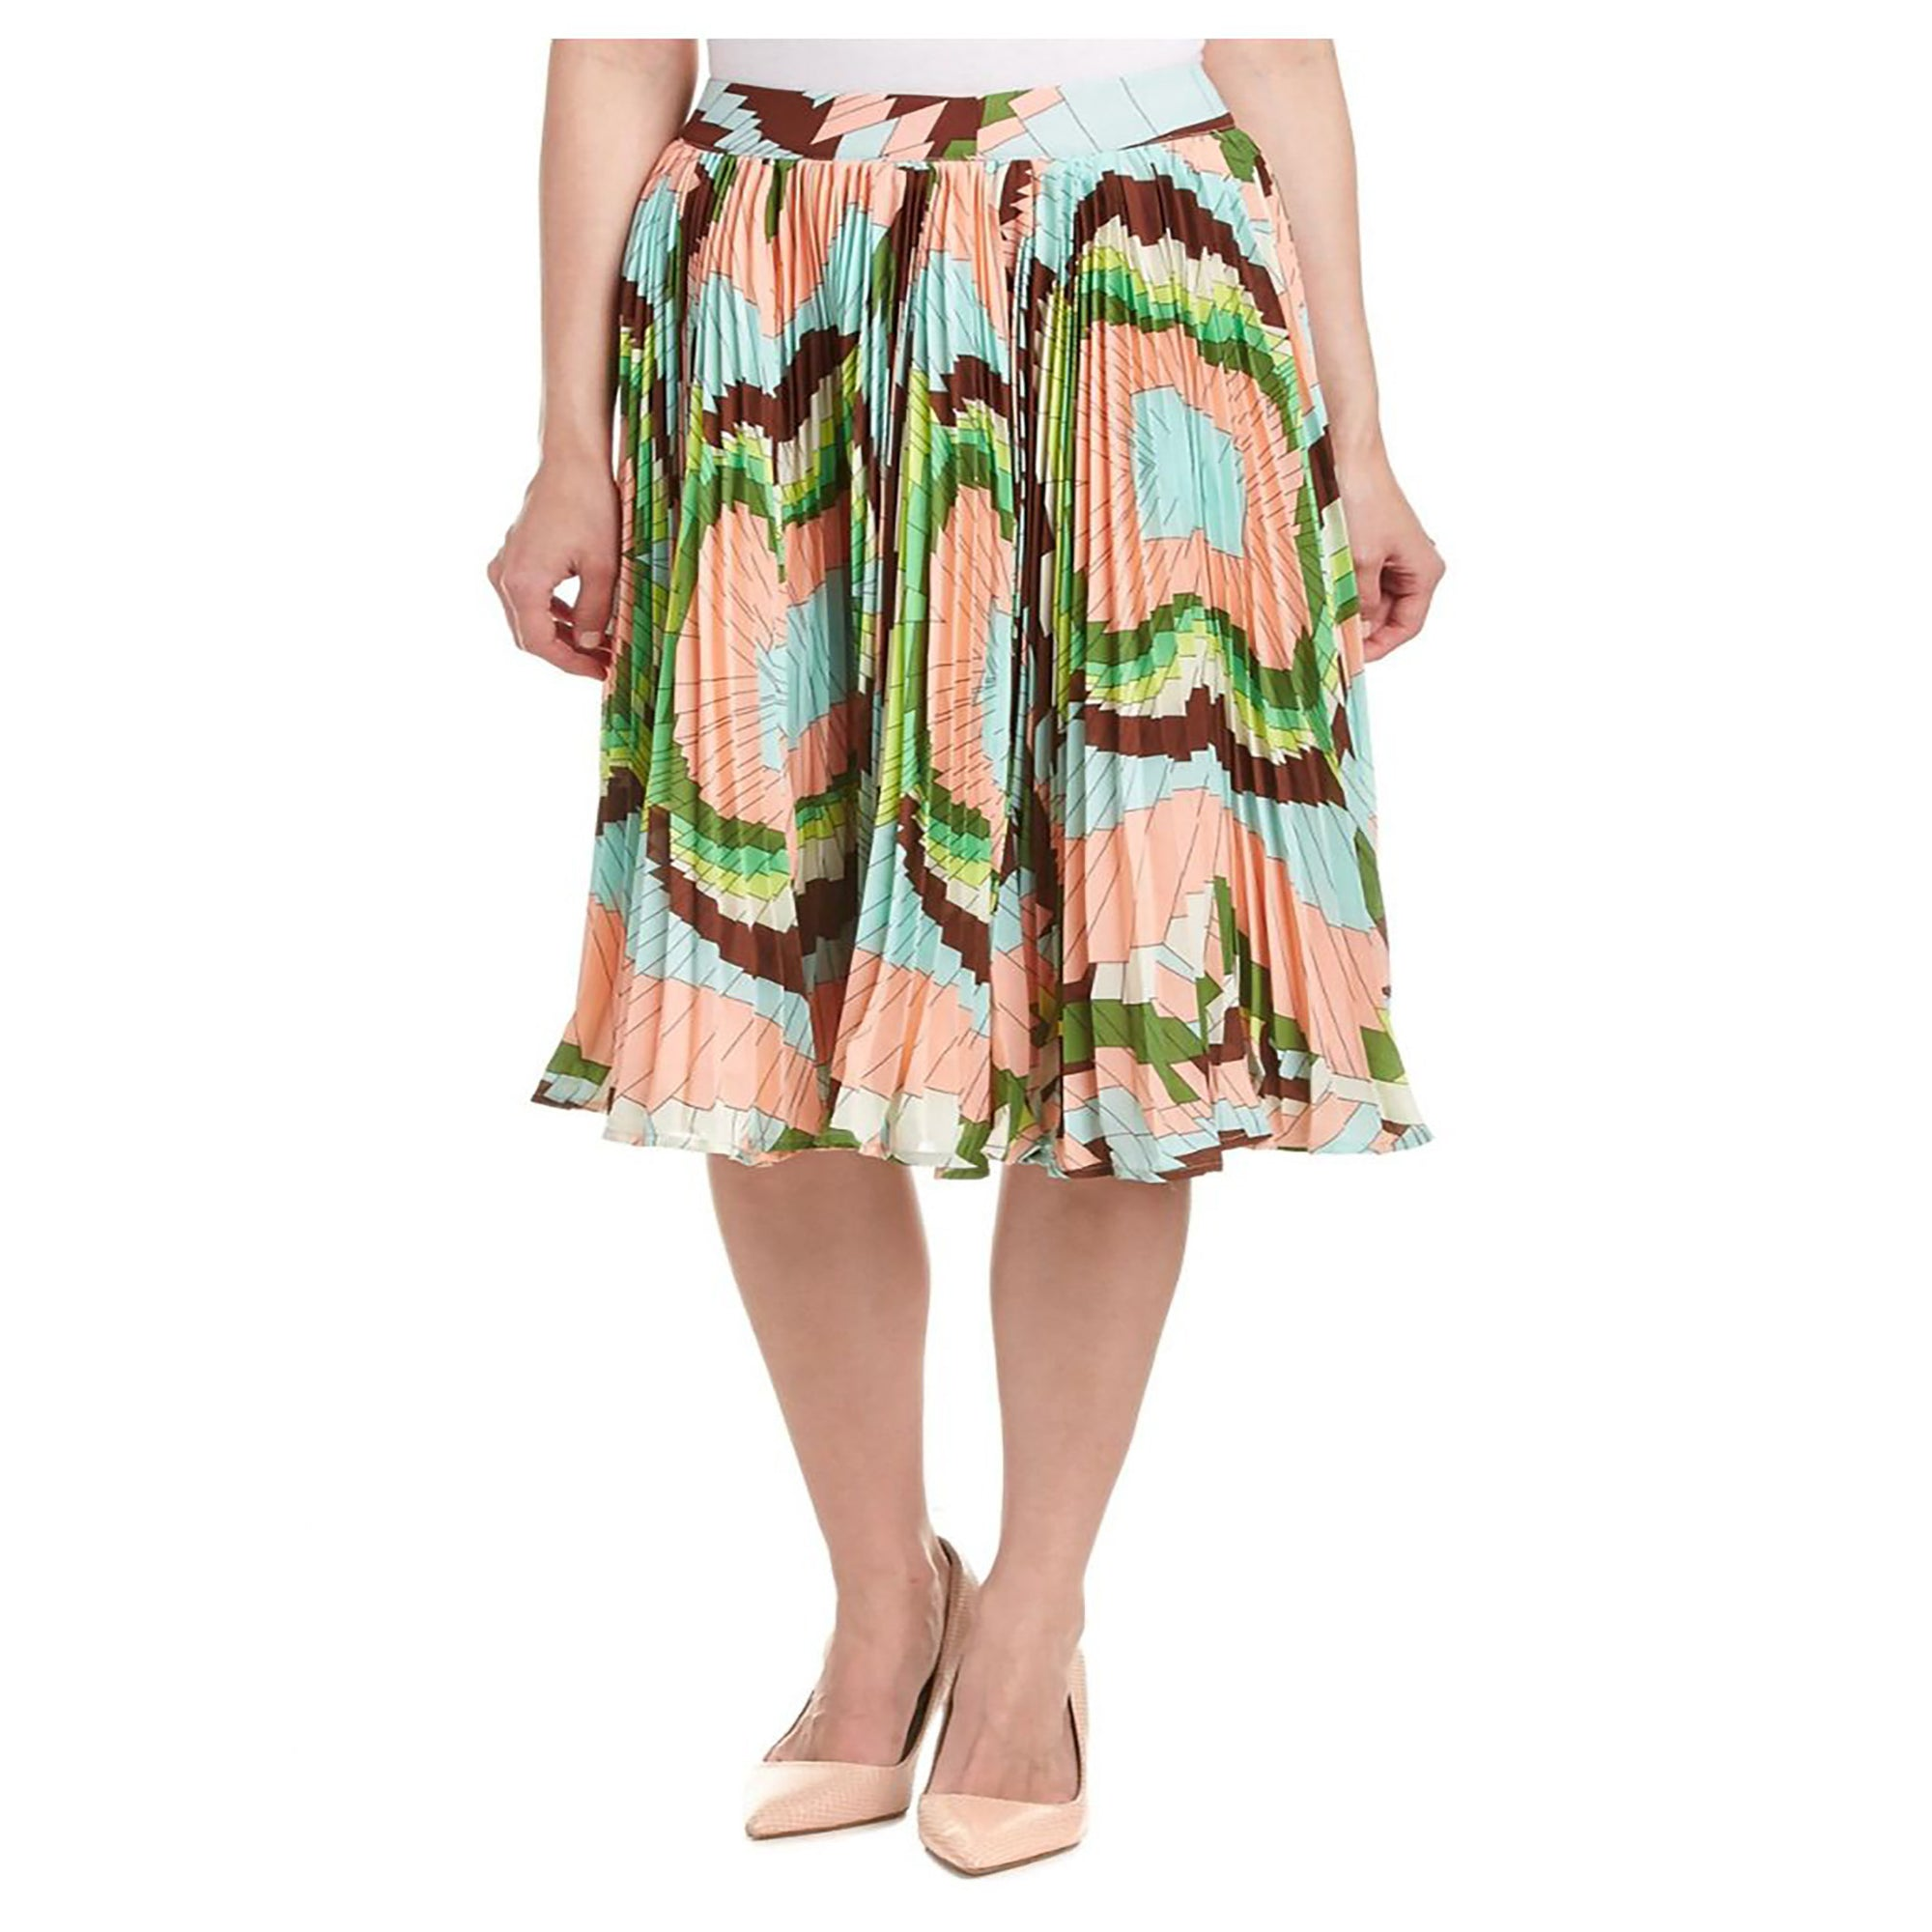 Printed Entire Pleats skirt